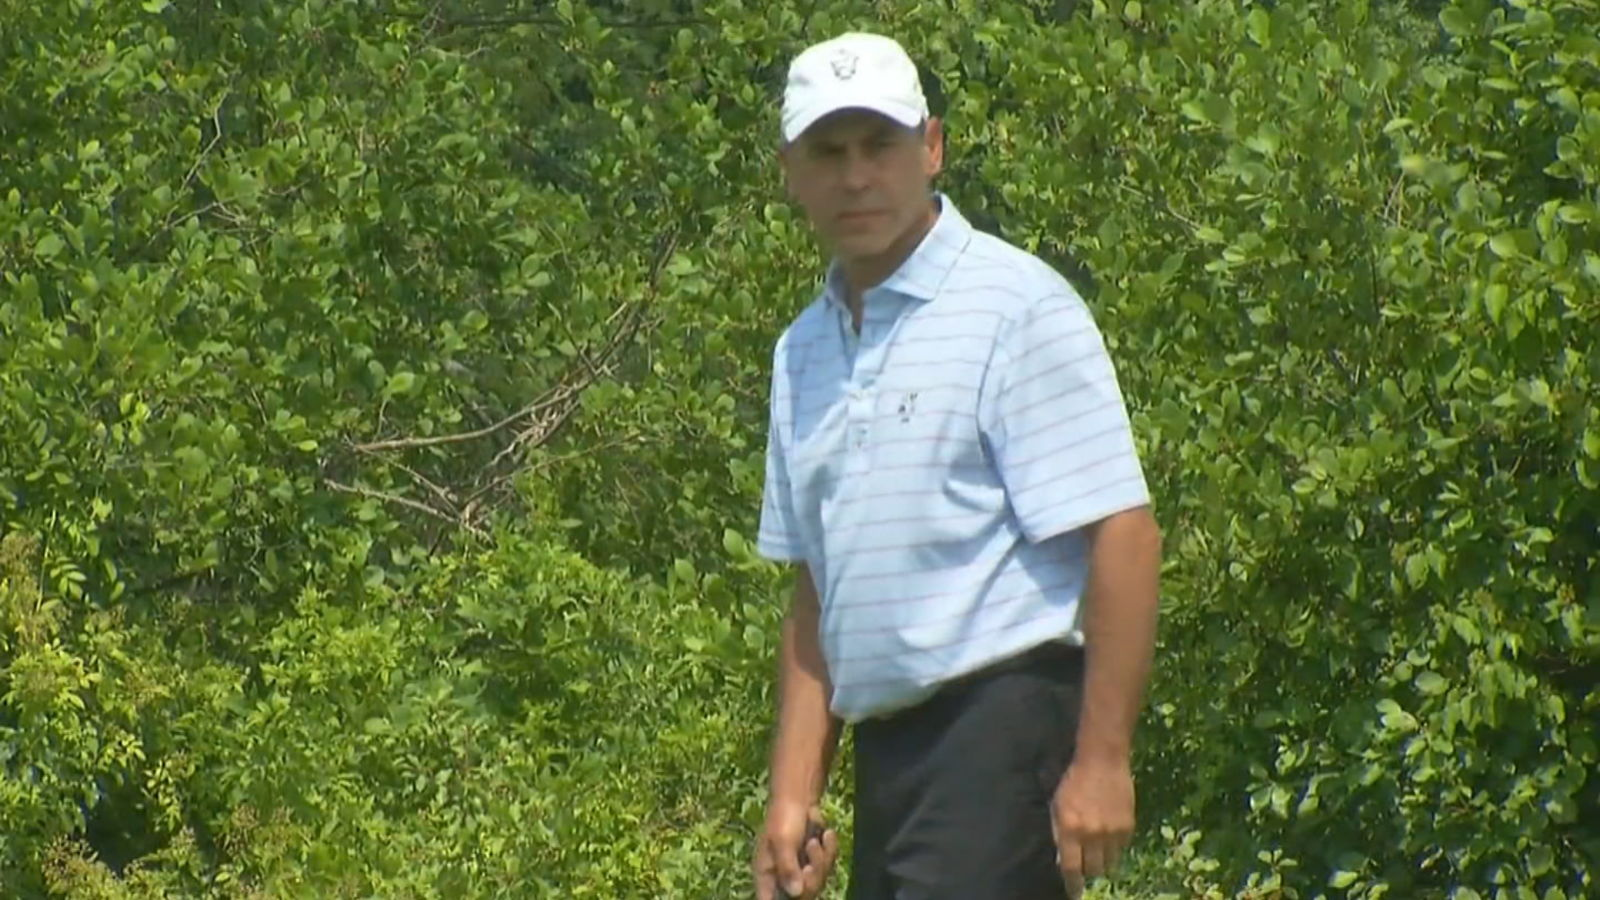 Dr. Christopher Roloff, an emergency room doctor at Sturdy Memorial Hospital in Attleboro, Mass.,{ } playing golf at this week's Rhode Island Amateur Championship. (WJAR)